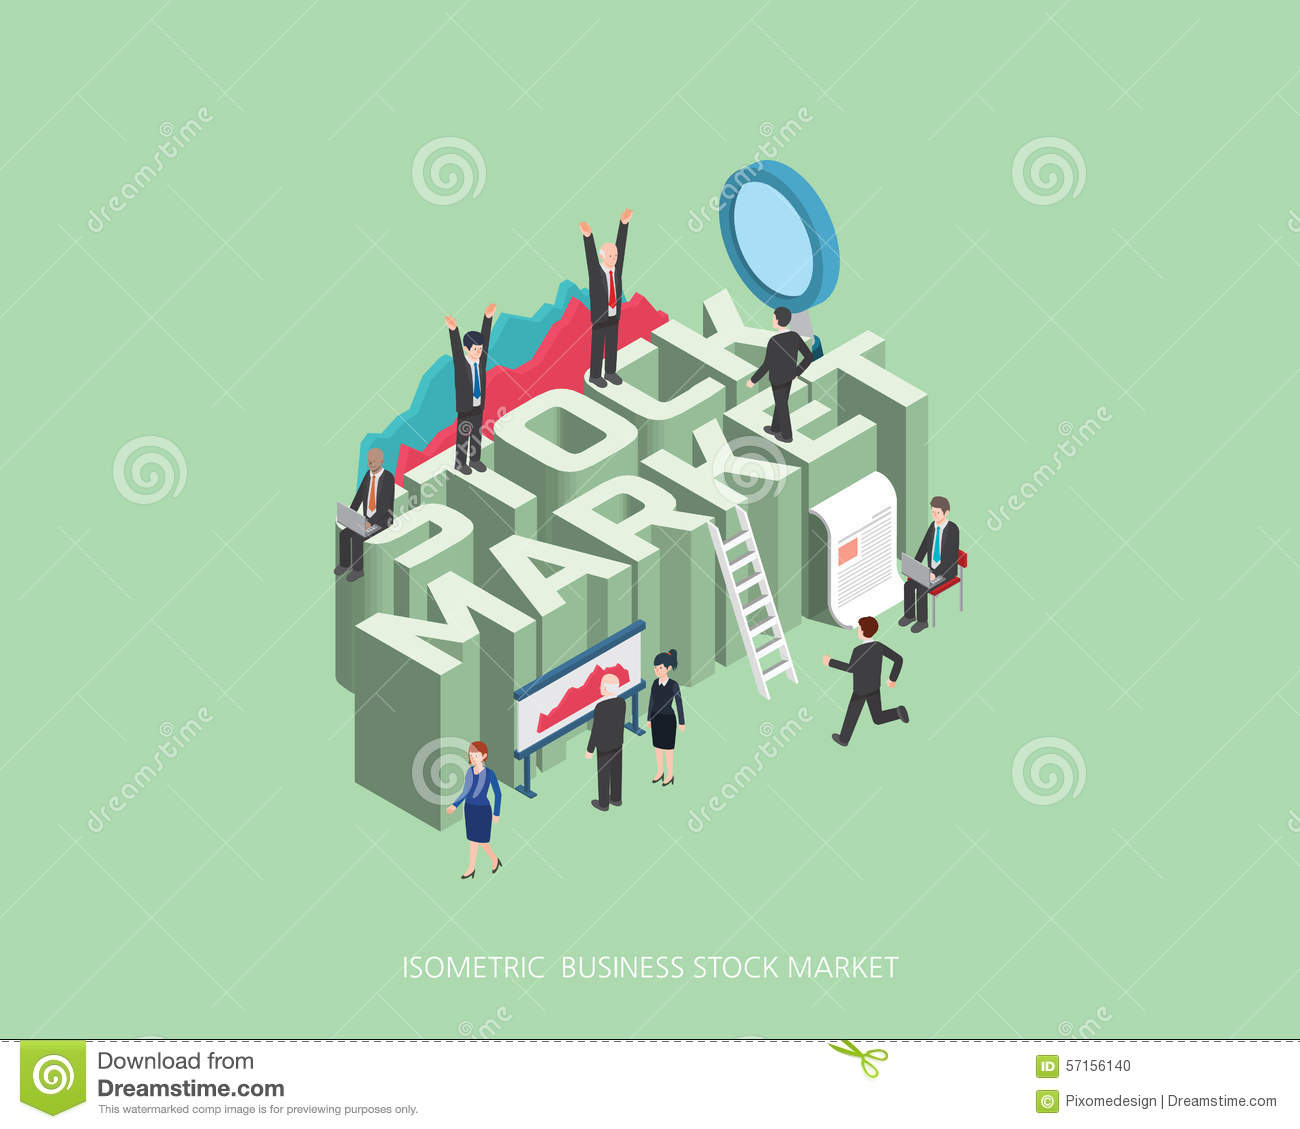 Flat 3d isometric illustration stock market concept design for 3d flat design online